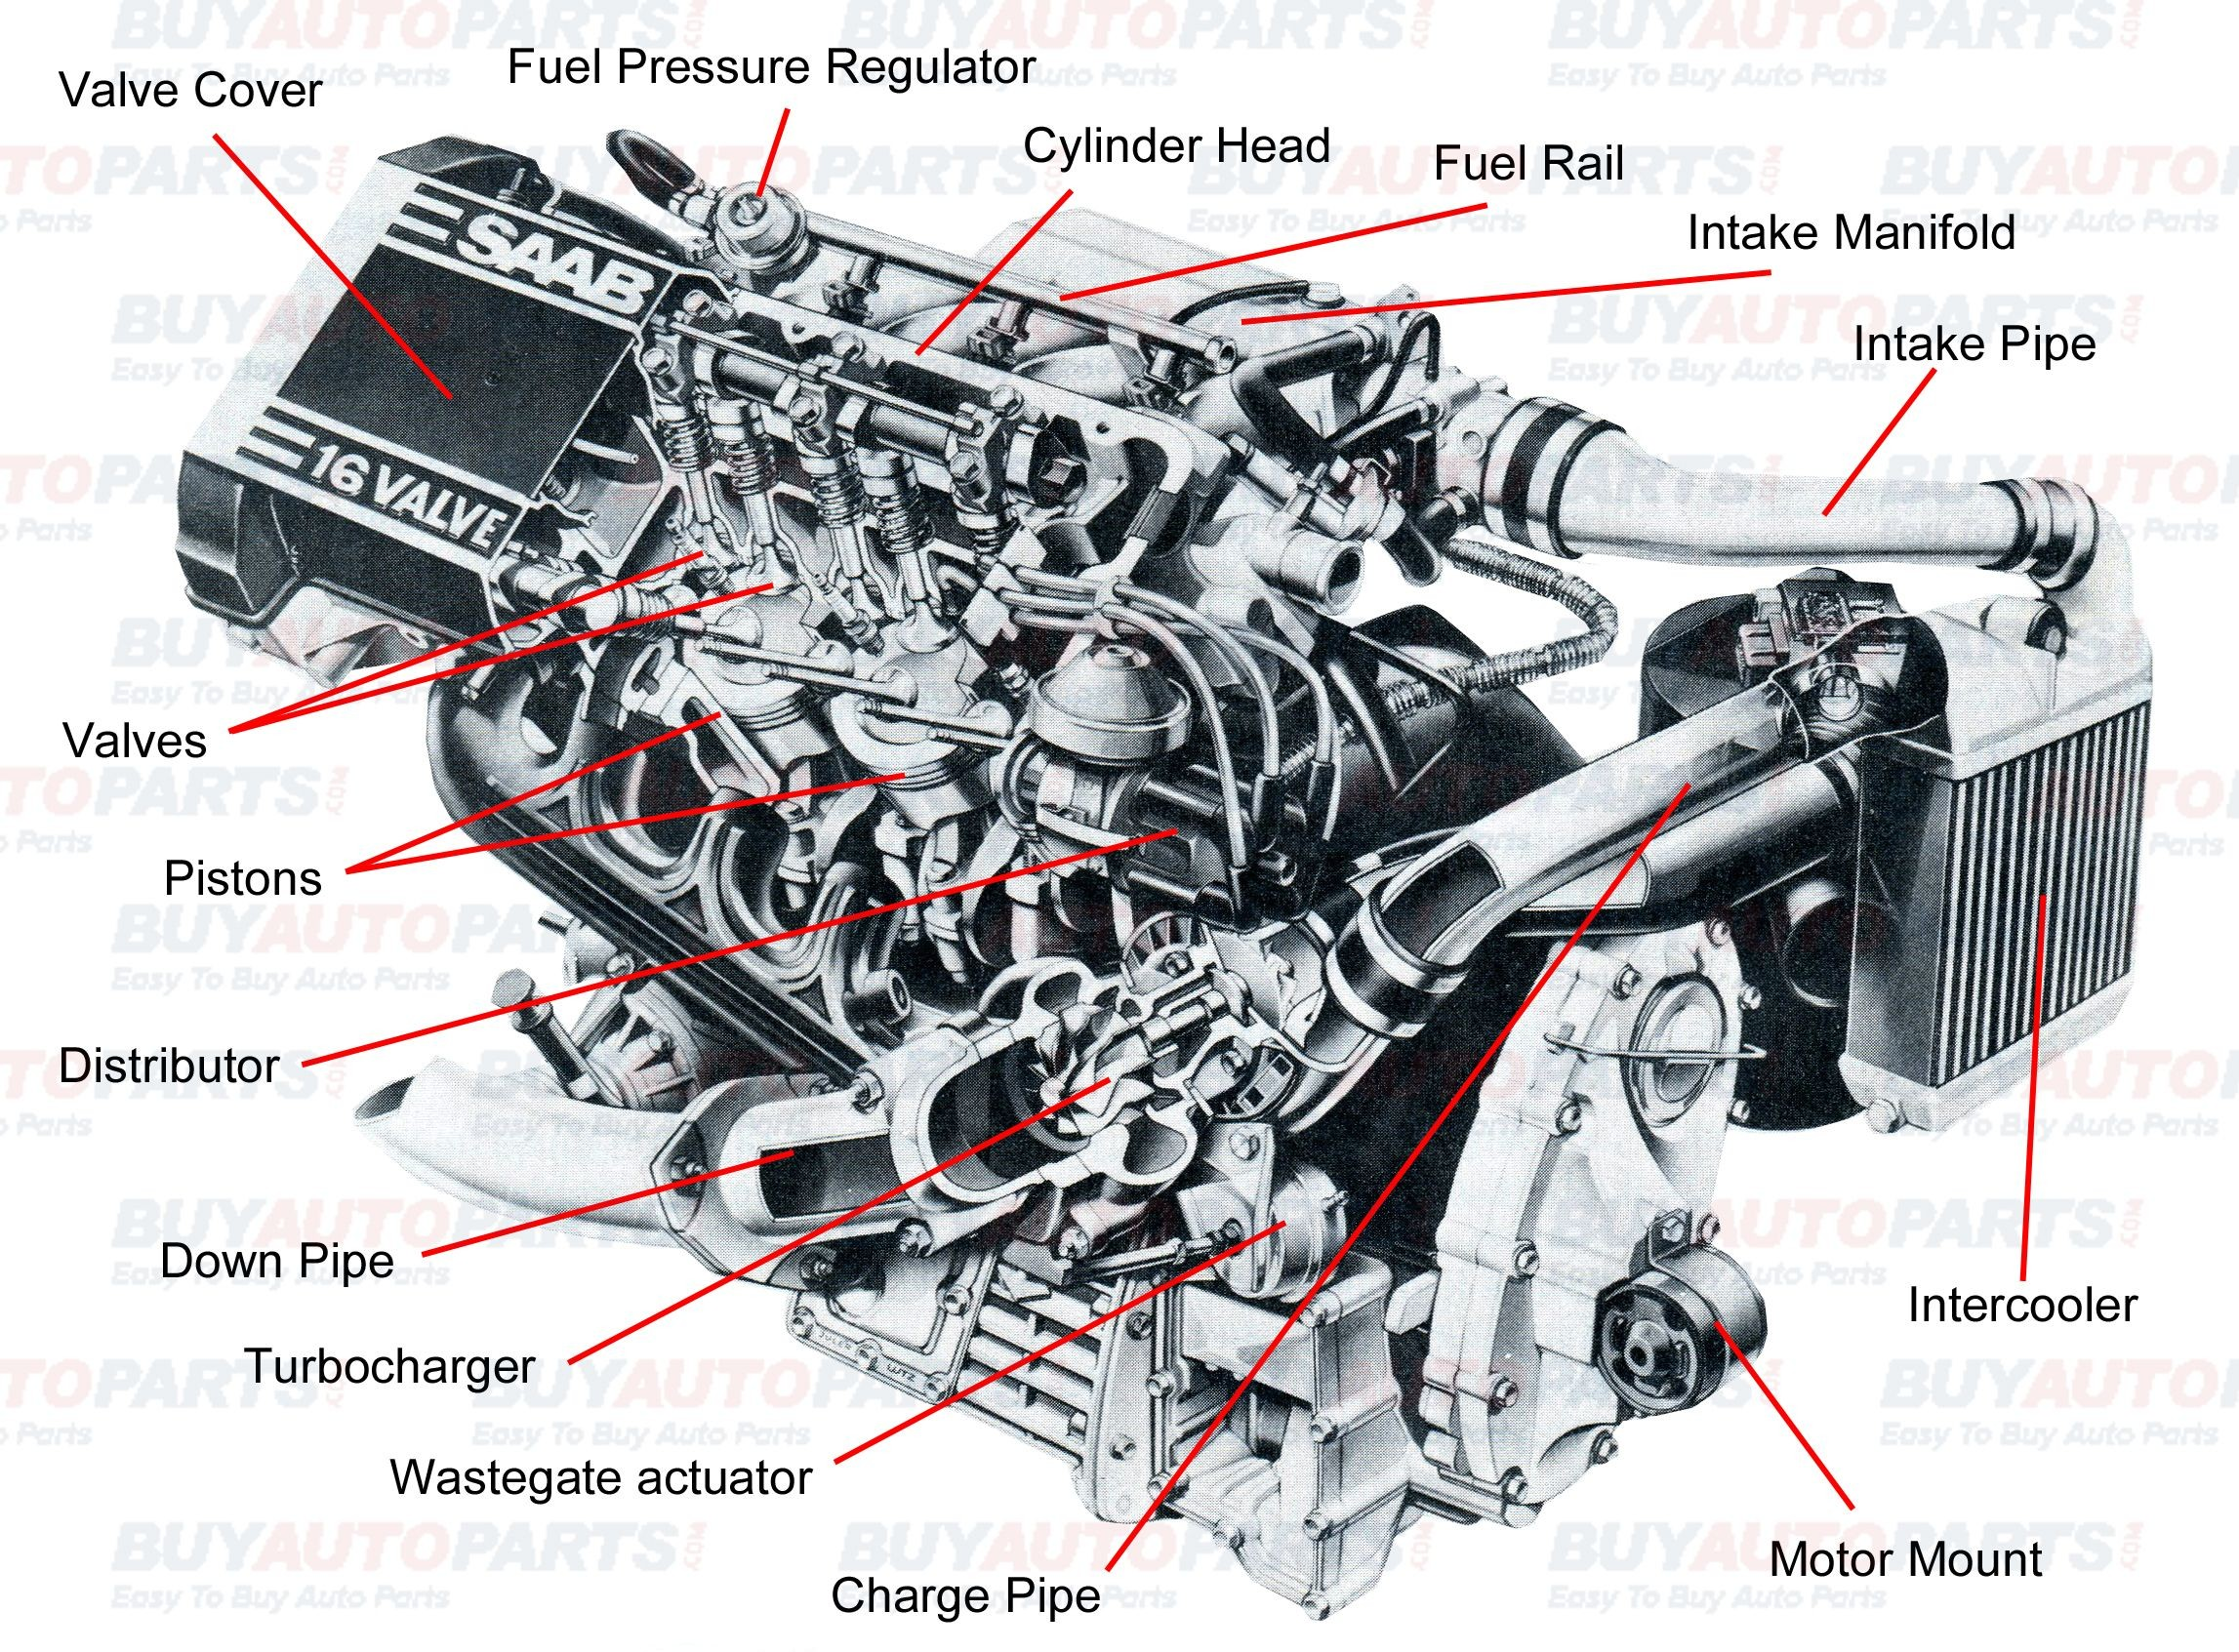 Diagram Of Car Wheel Parts Pin by Jimmiejanet Testellamwfz On What Does An Engine with Turbo